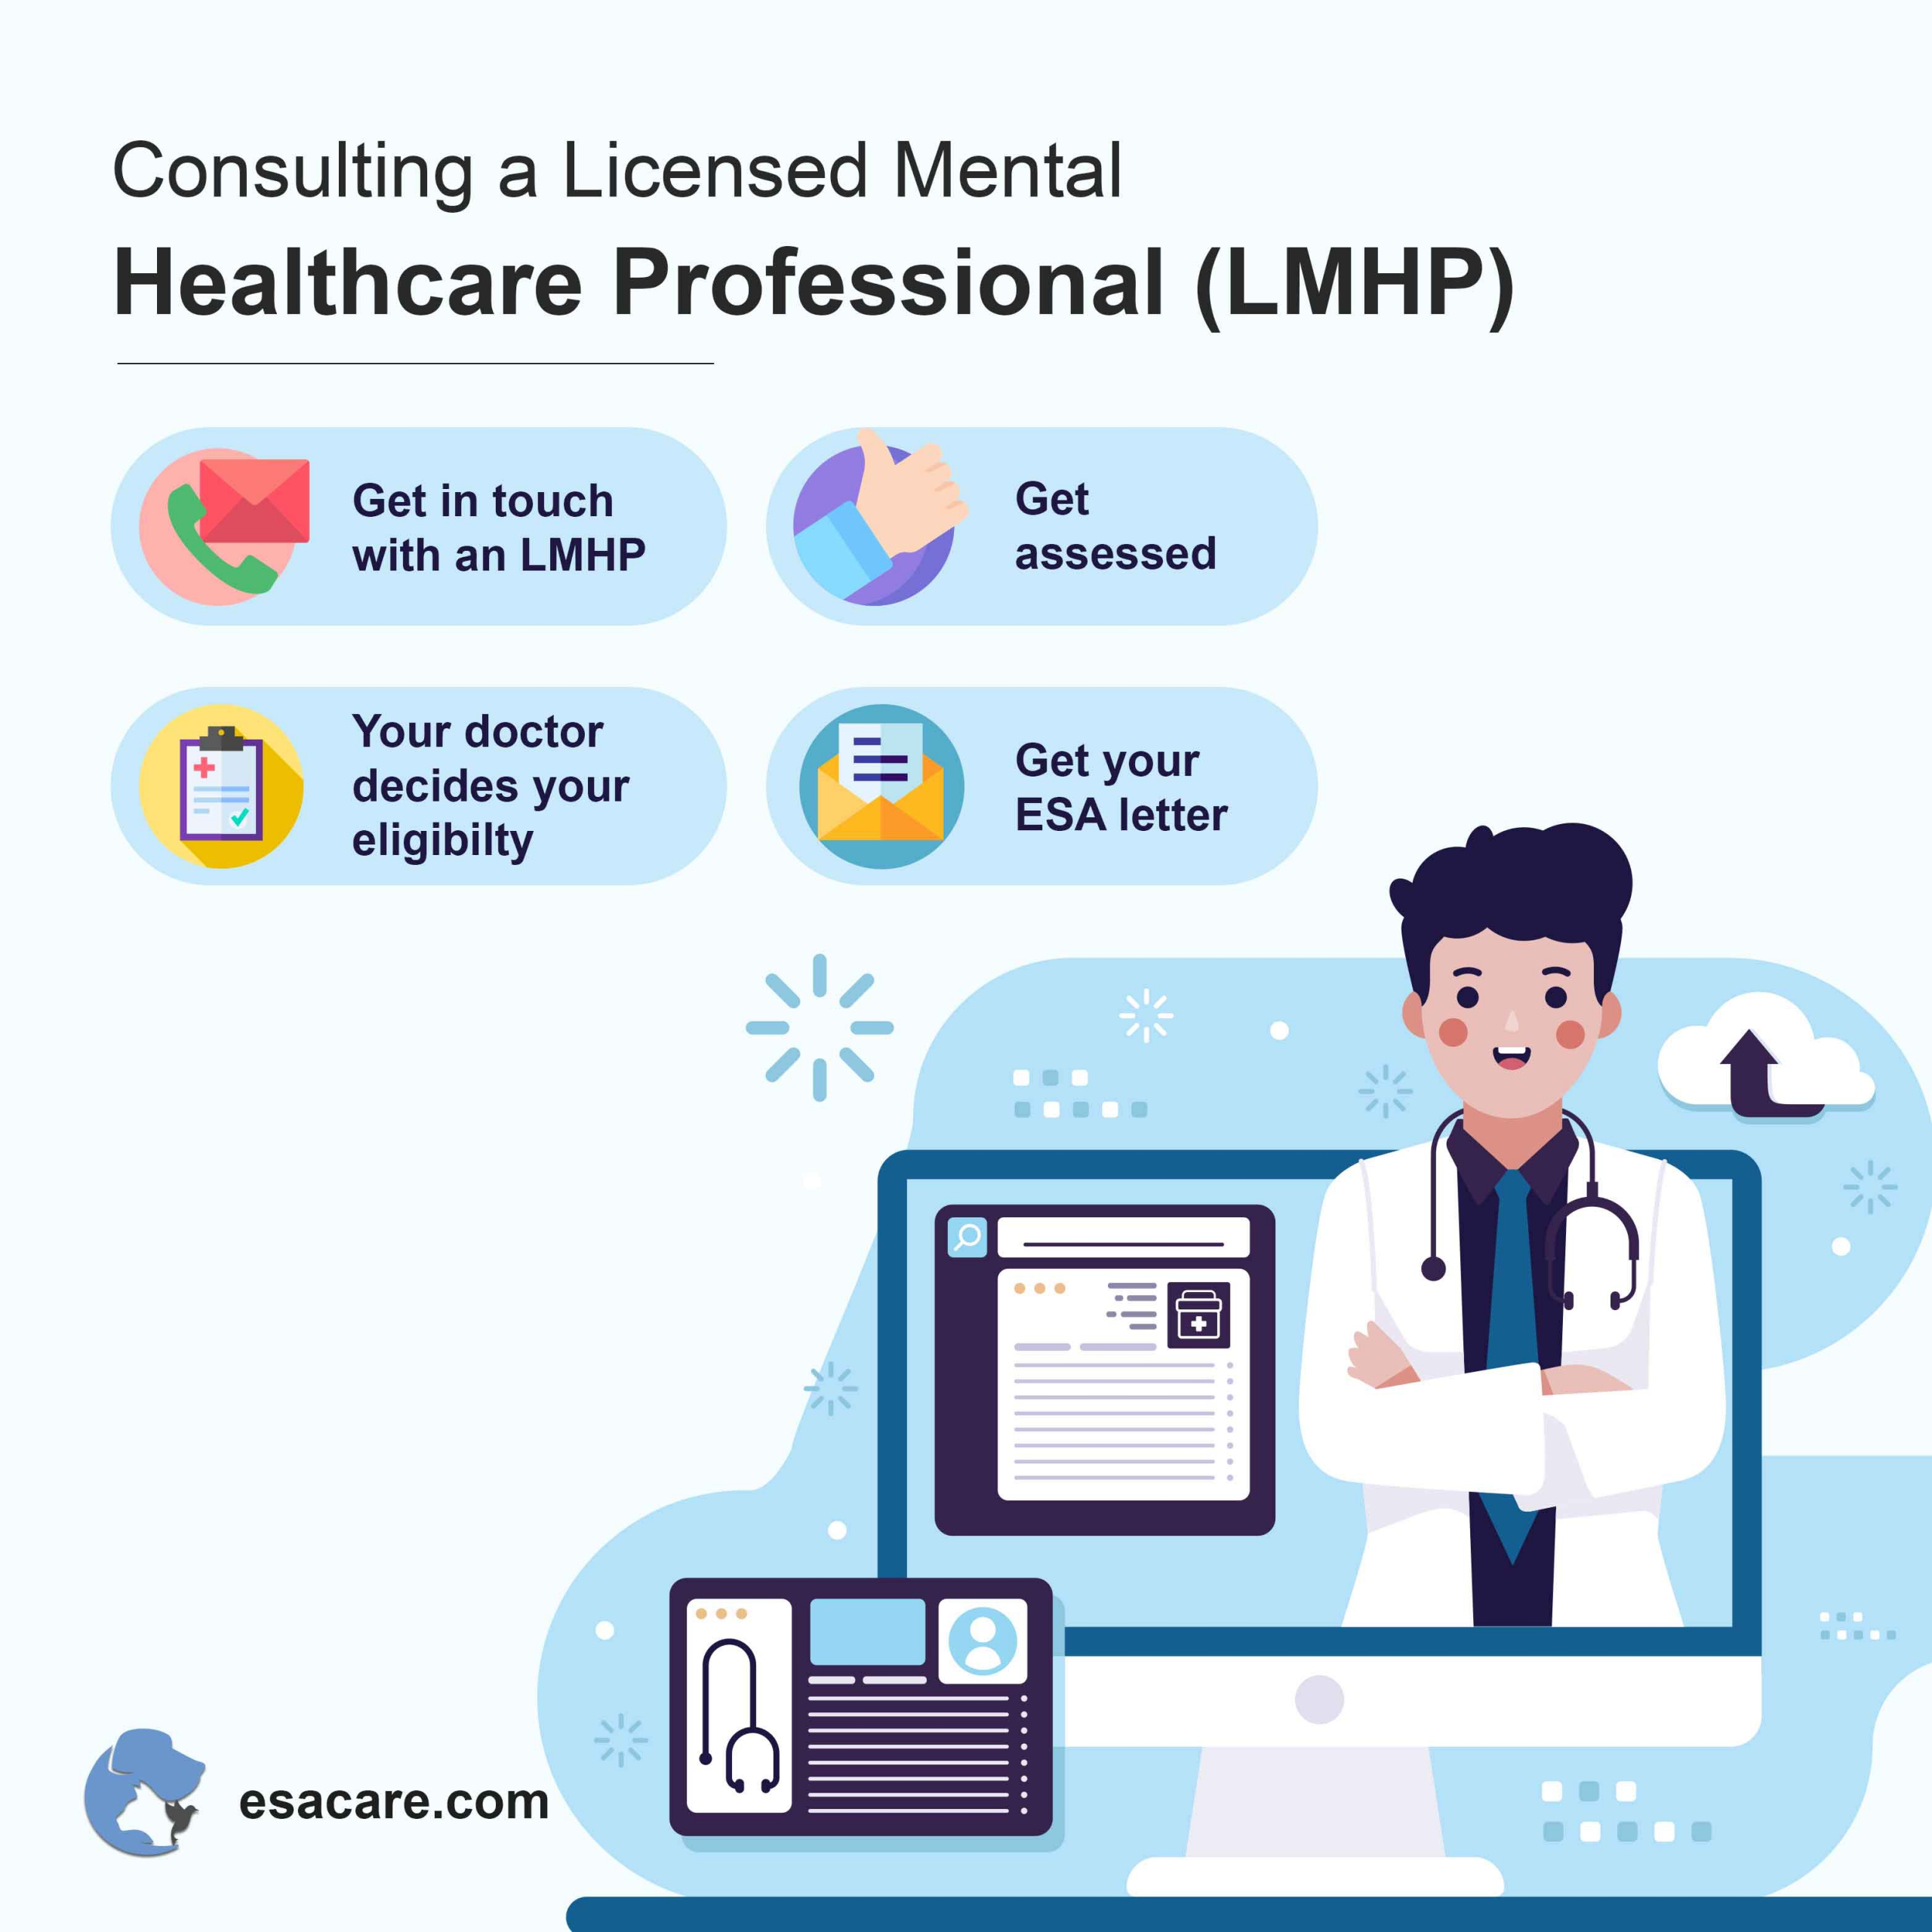 Consulting a licensed mental health professional